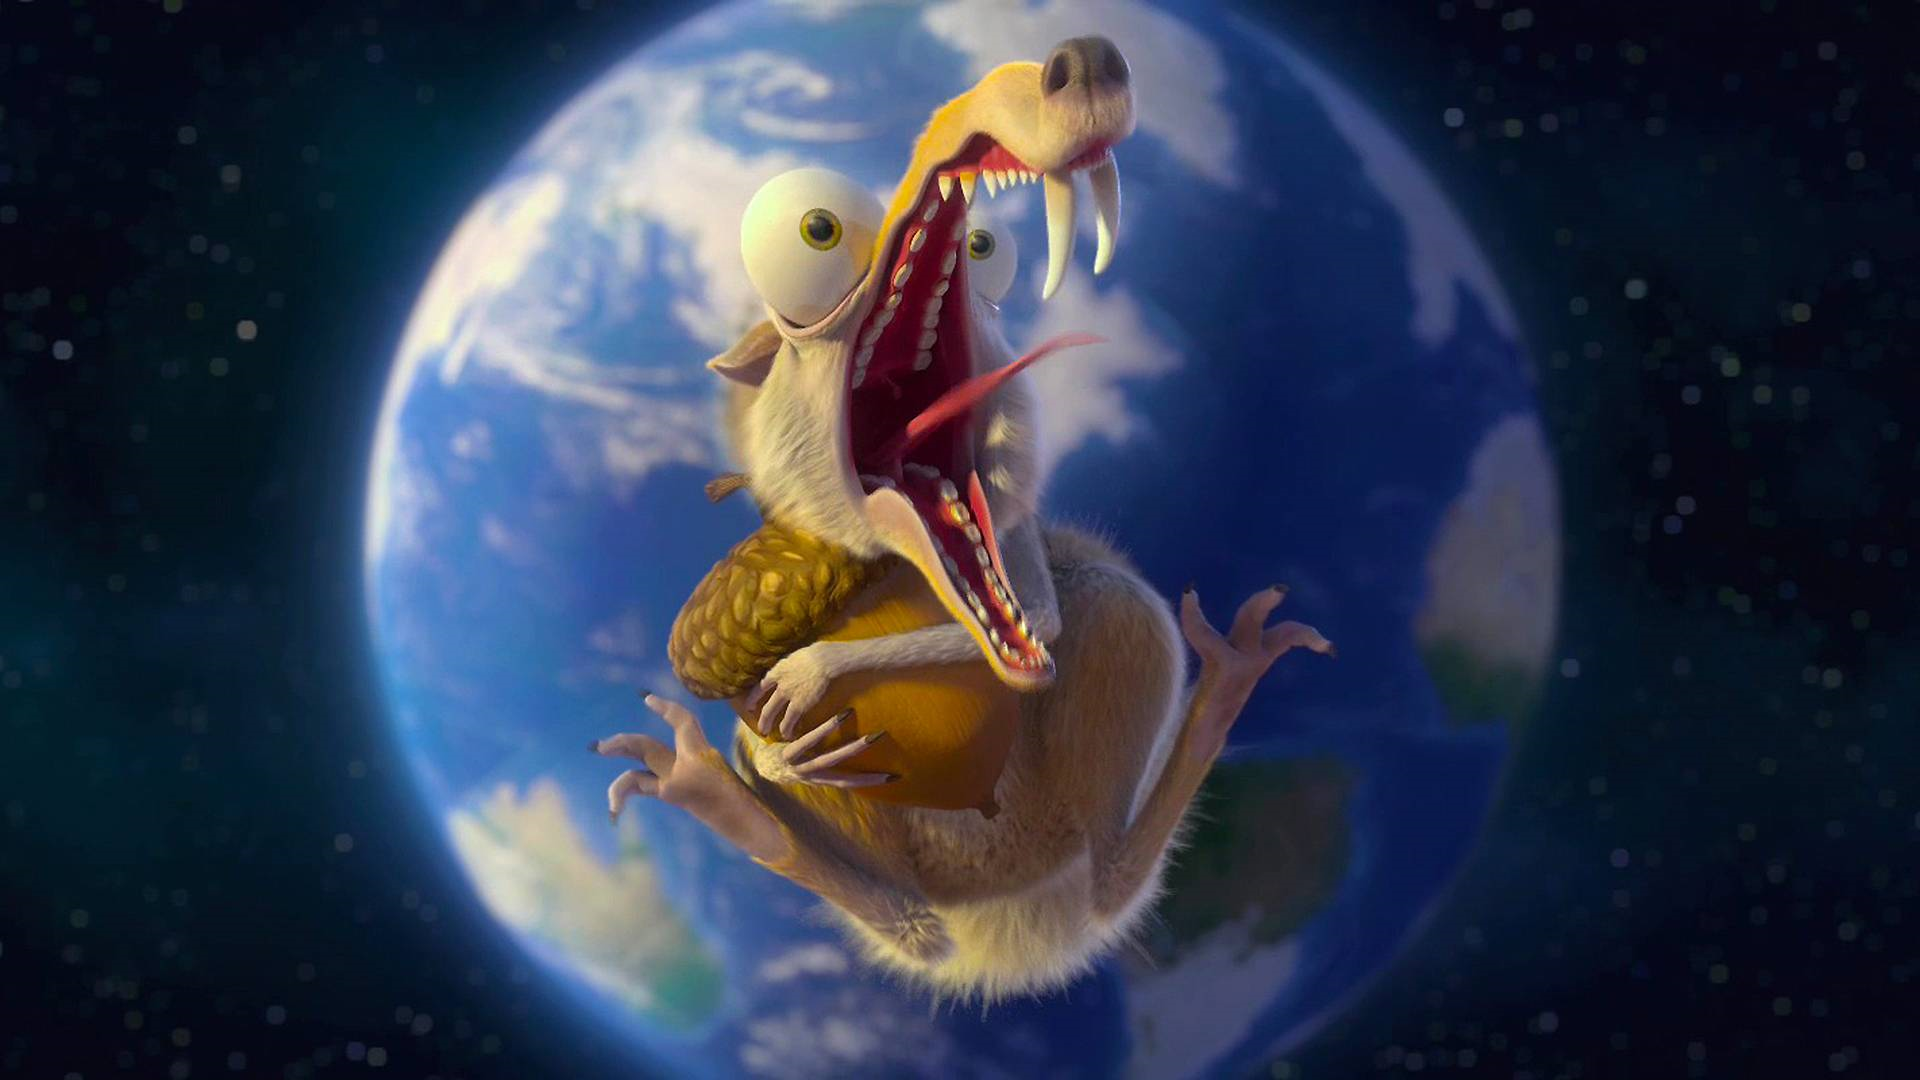 Ice Age 5 Animated Movie Hd Movies 4k Wallpapers Images